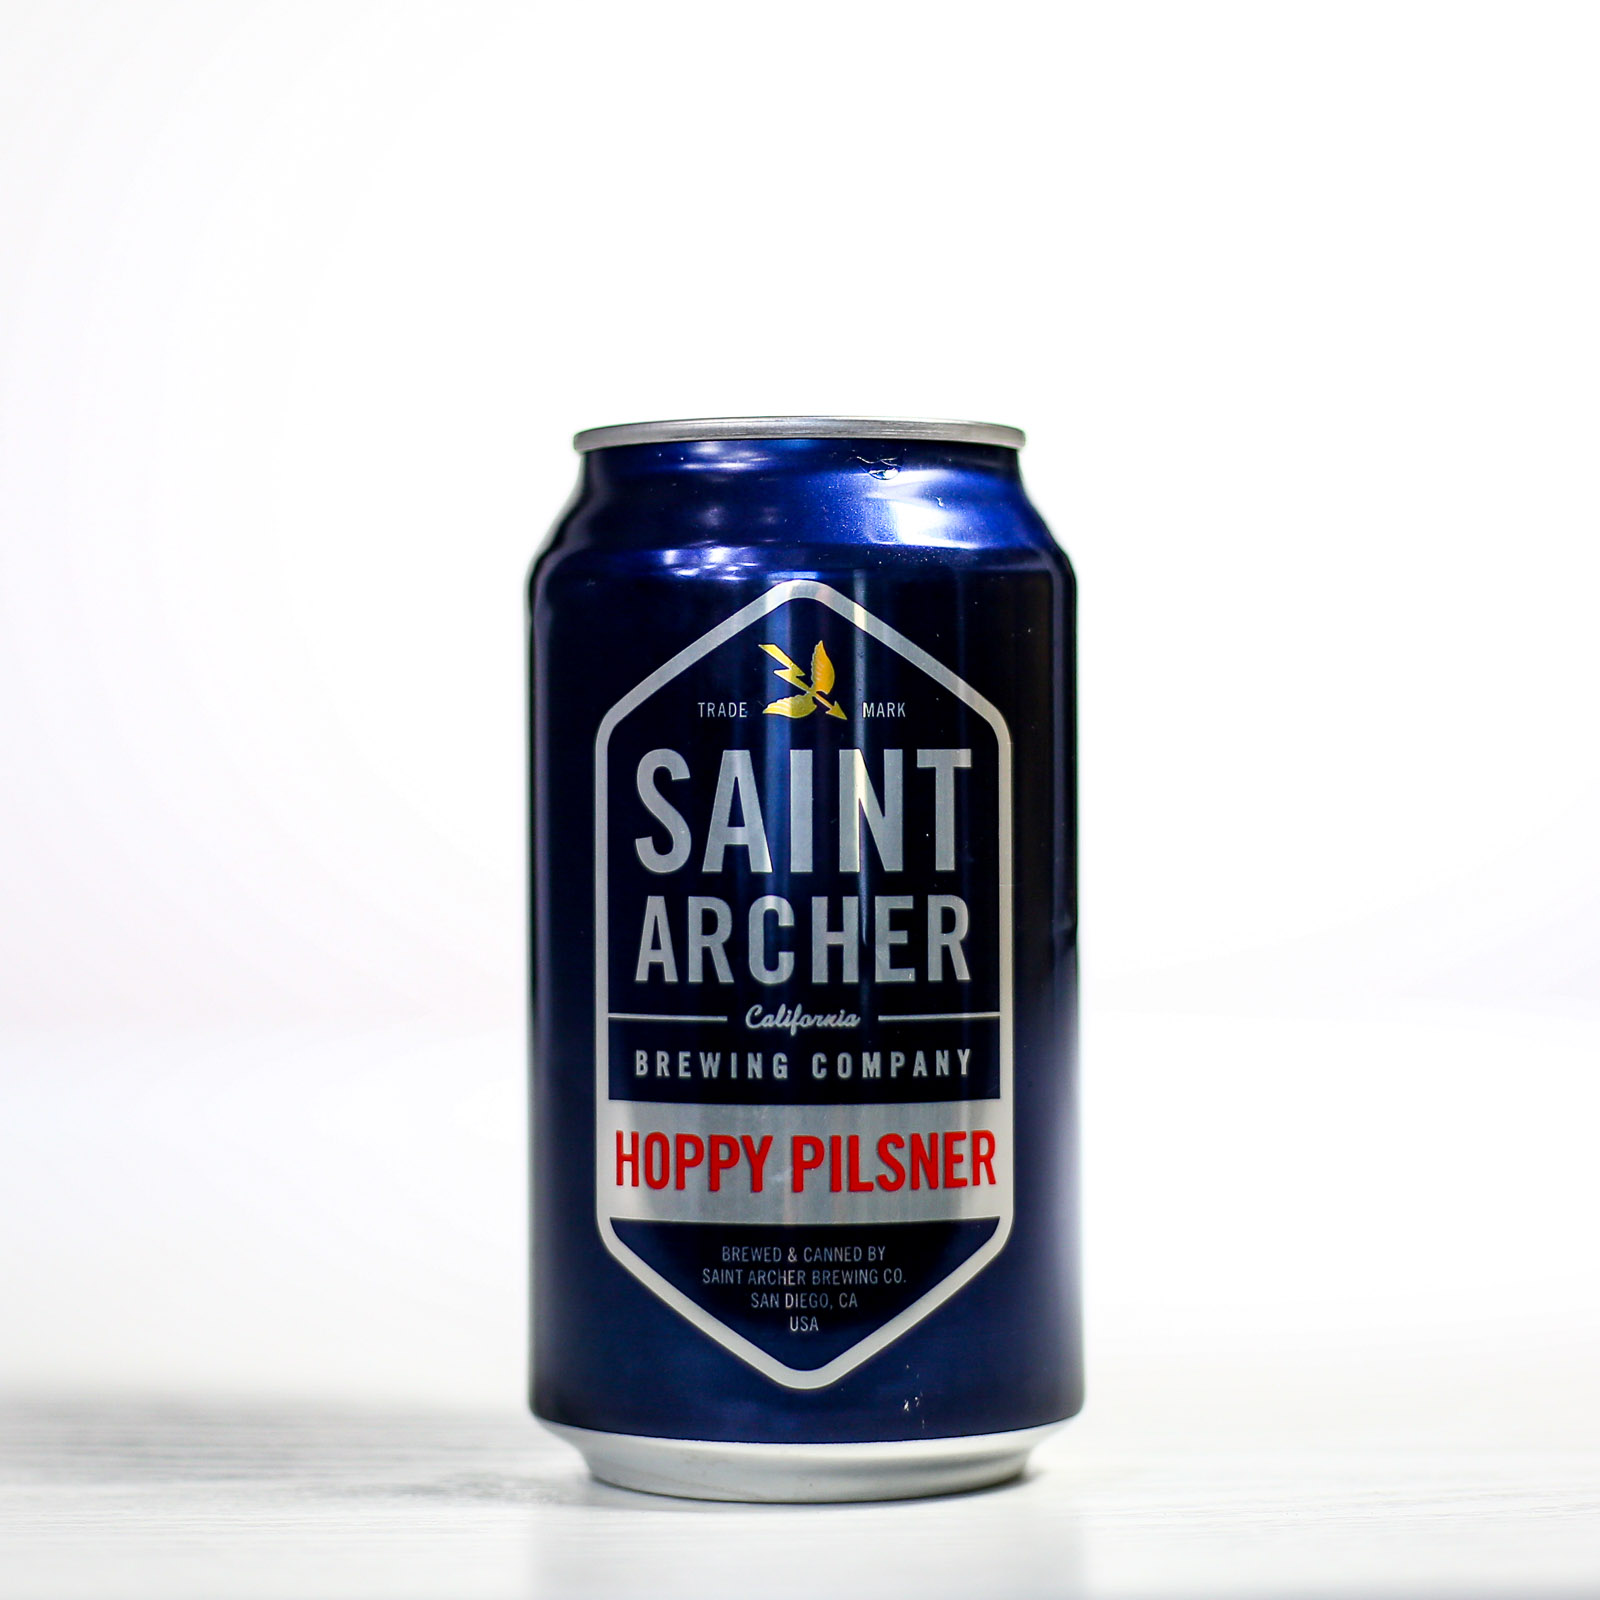 Saint Archer Brewing Company - Hoppy Pilsner